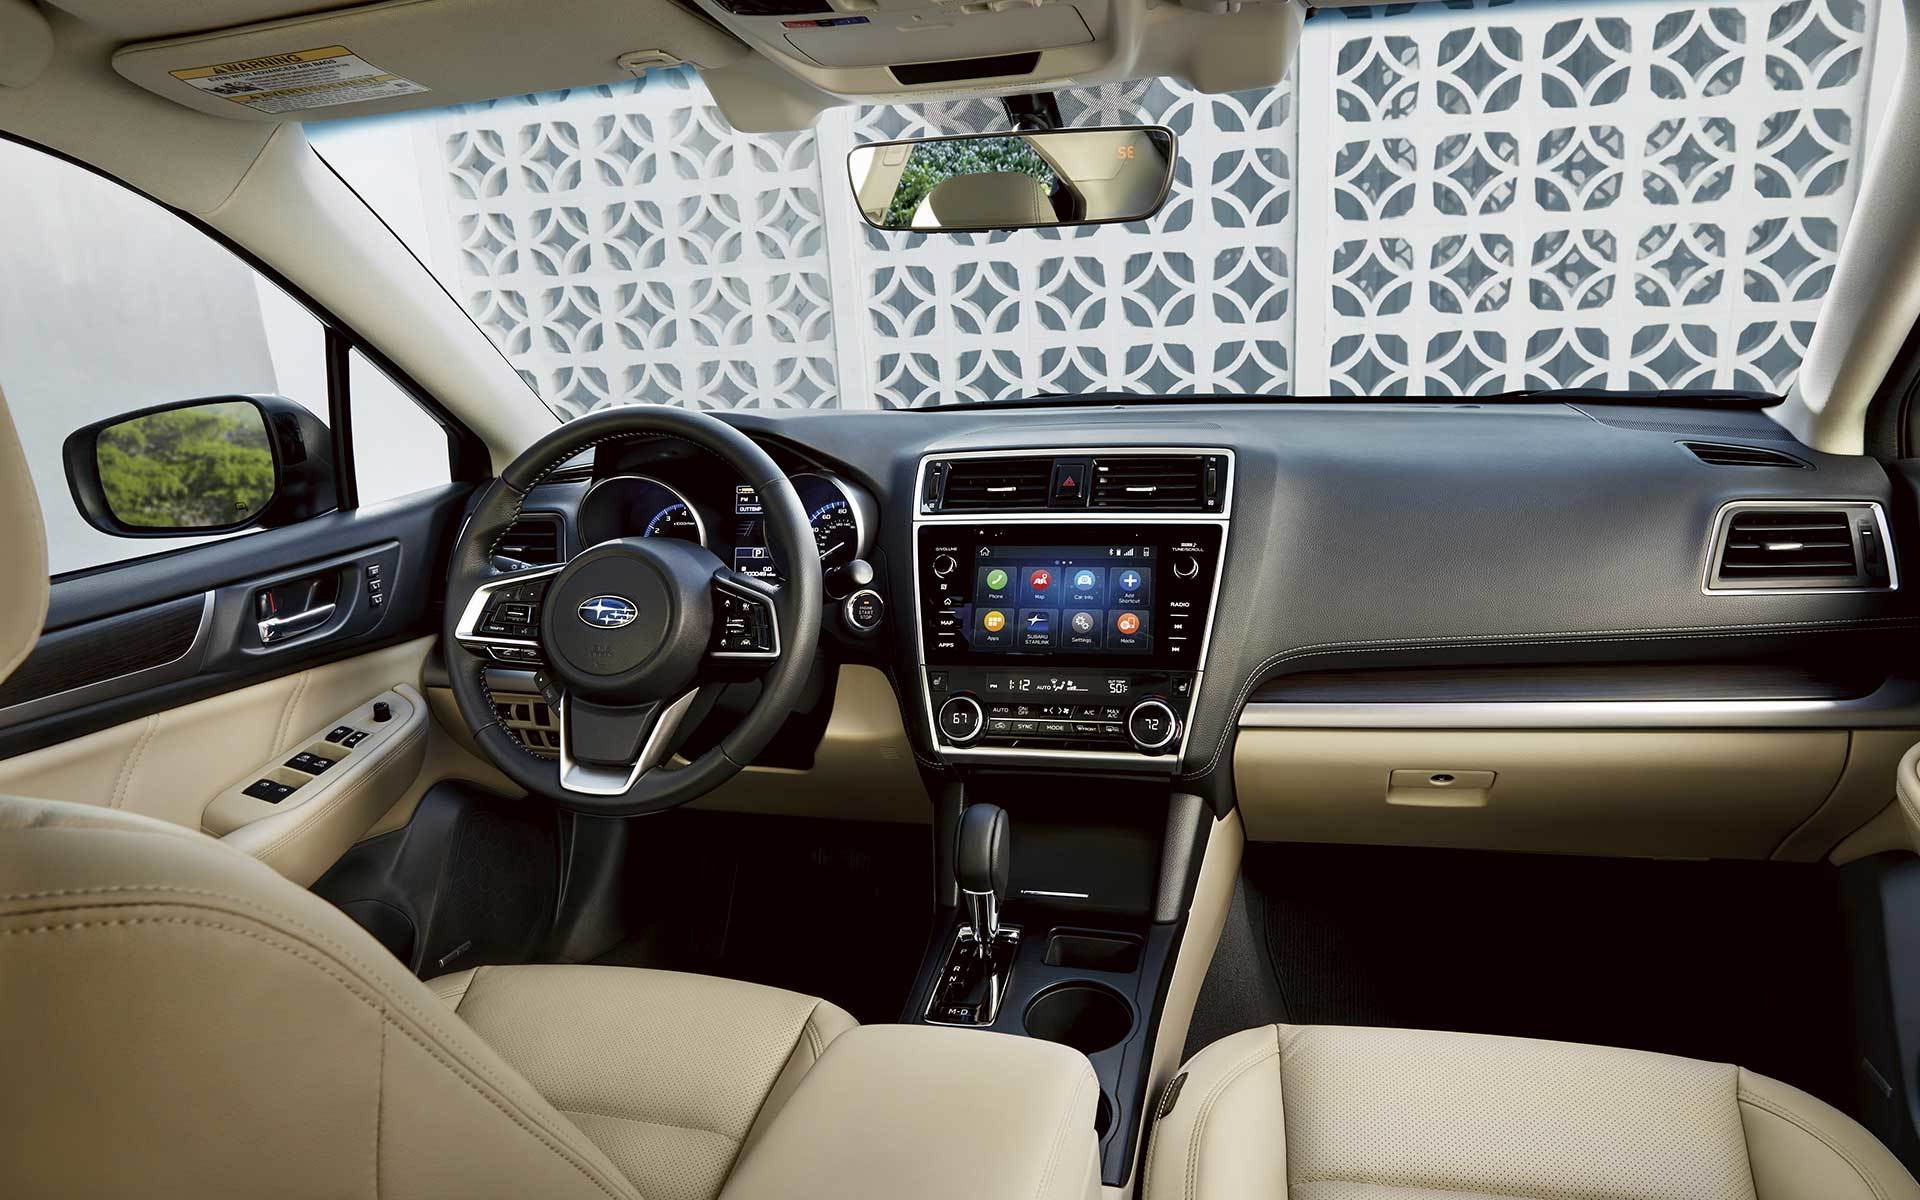 2020 Subaru Legacy Interior & Technology